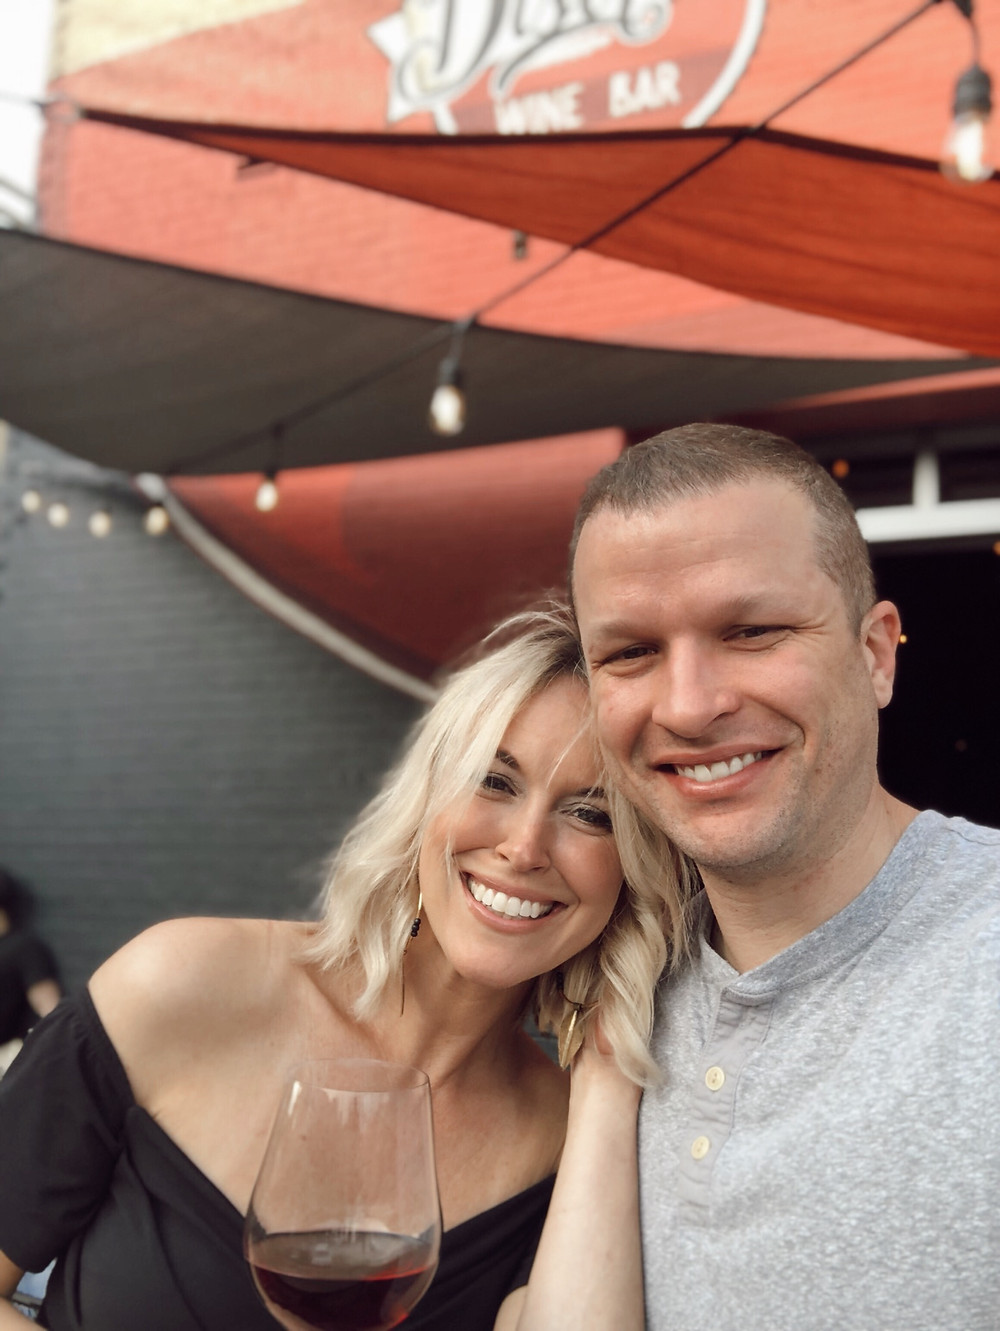 Couple smile in front of red awning at District Wine bar